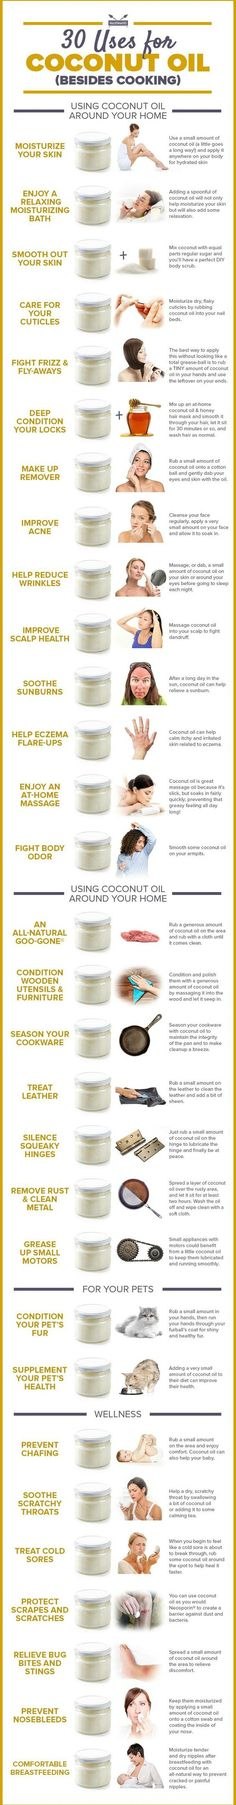 SURPRISING USES OF COCONUT OIL FOR PERSONAL HYGIENE